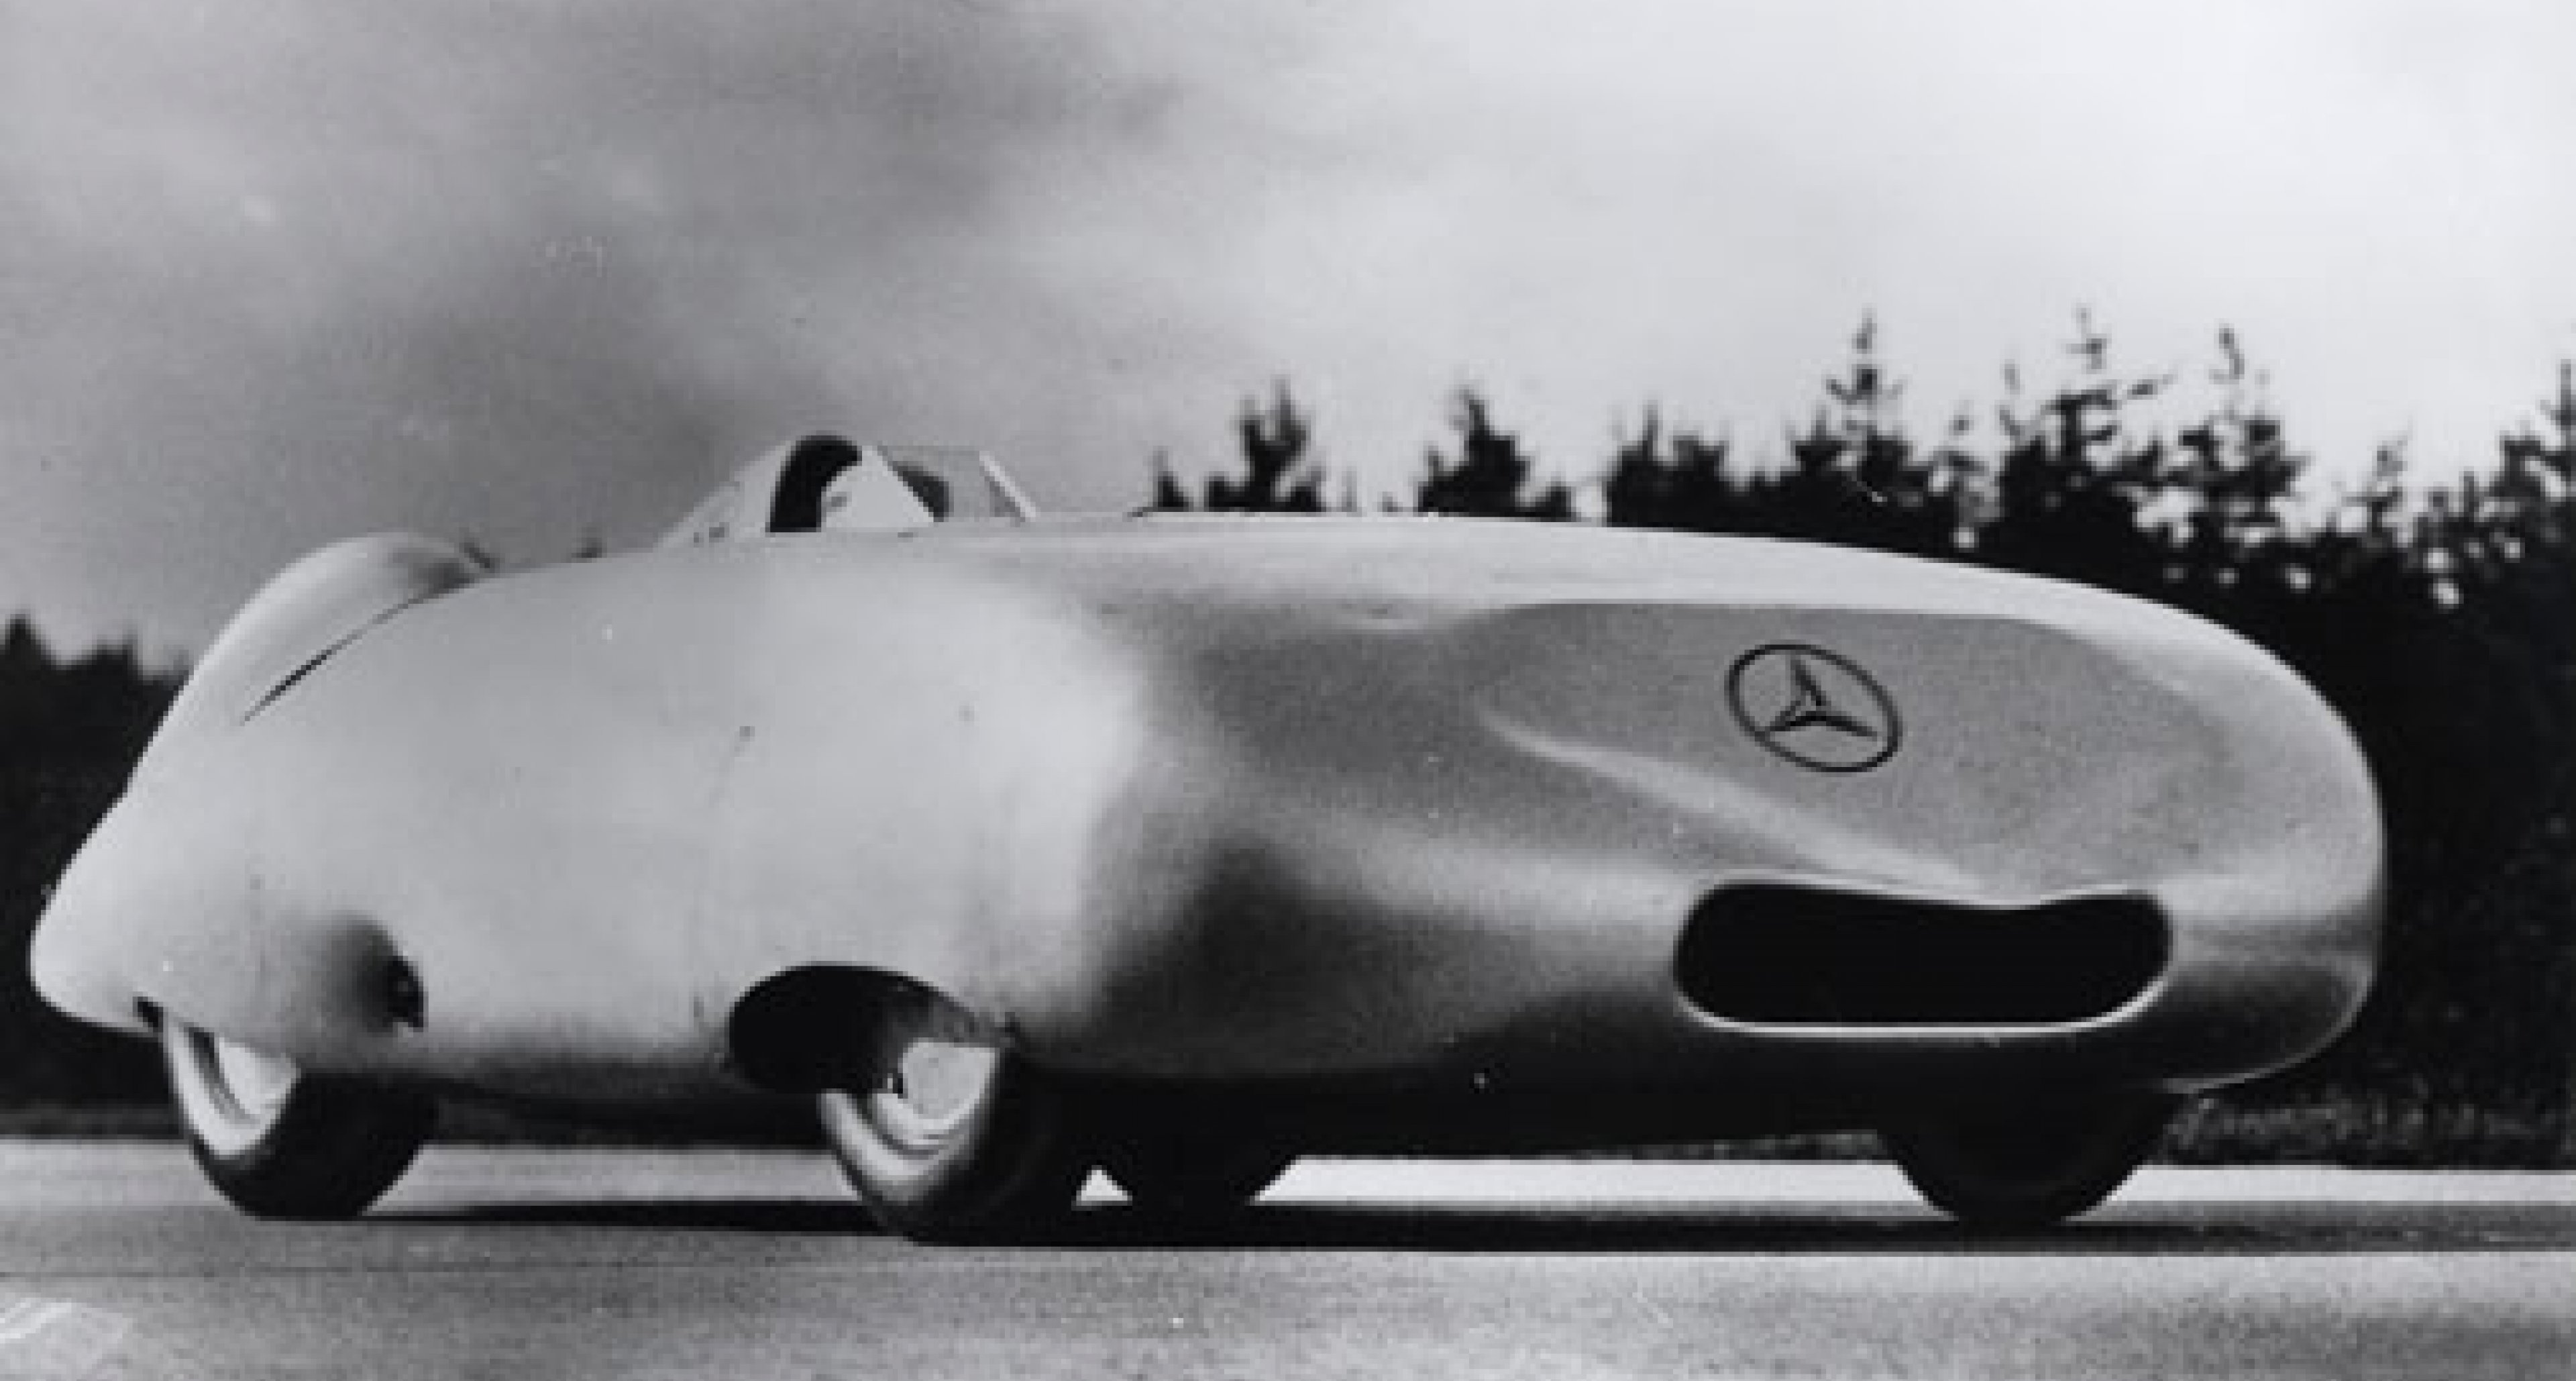 Mercedes speed record cars of the 1930s